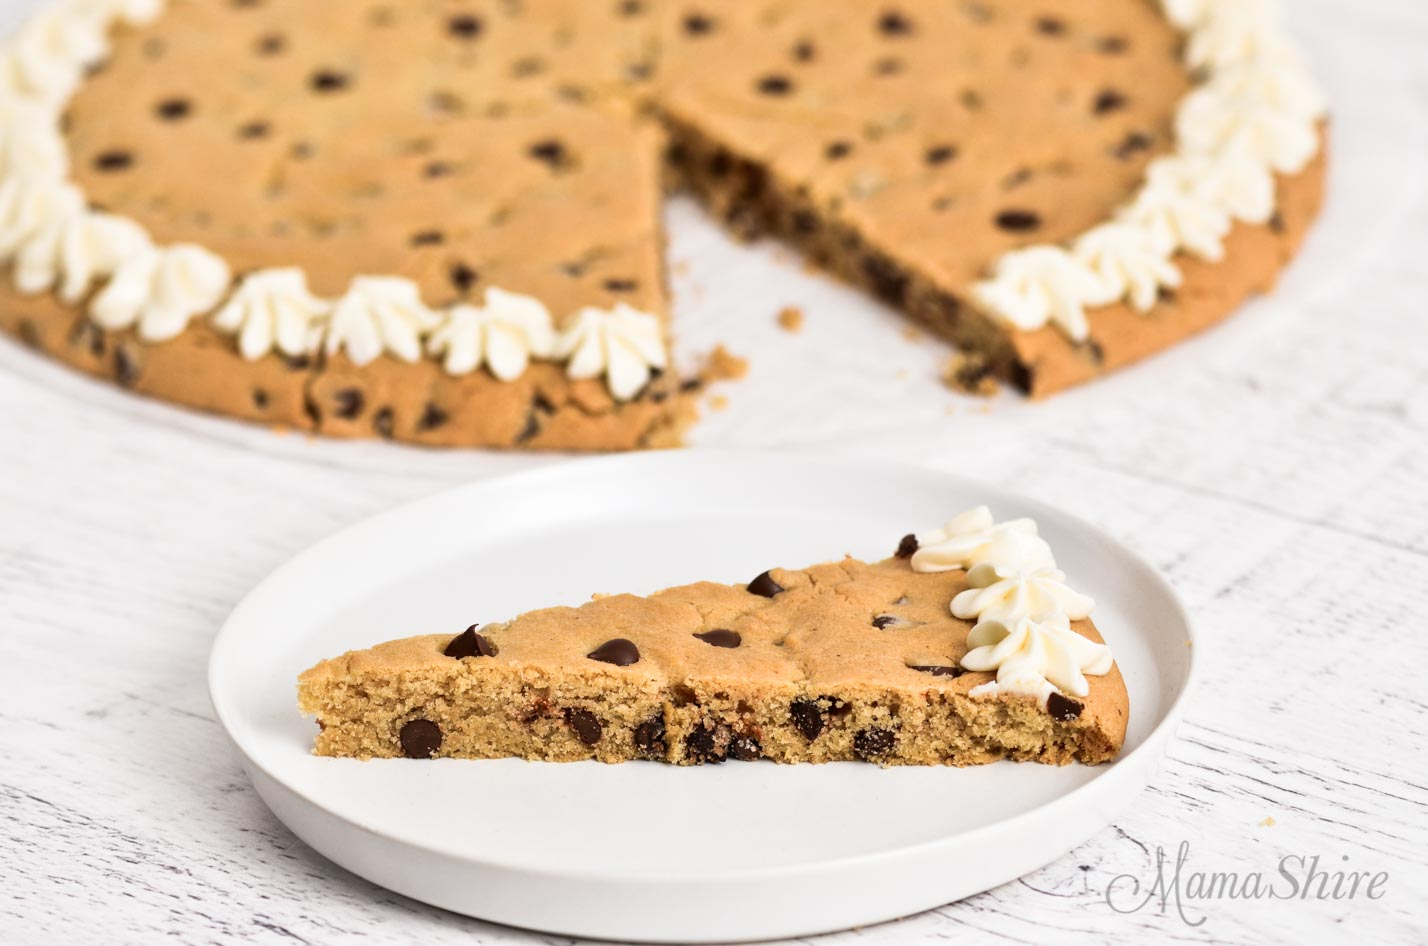 Cookie cake with icing and chocolate chips.